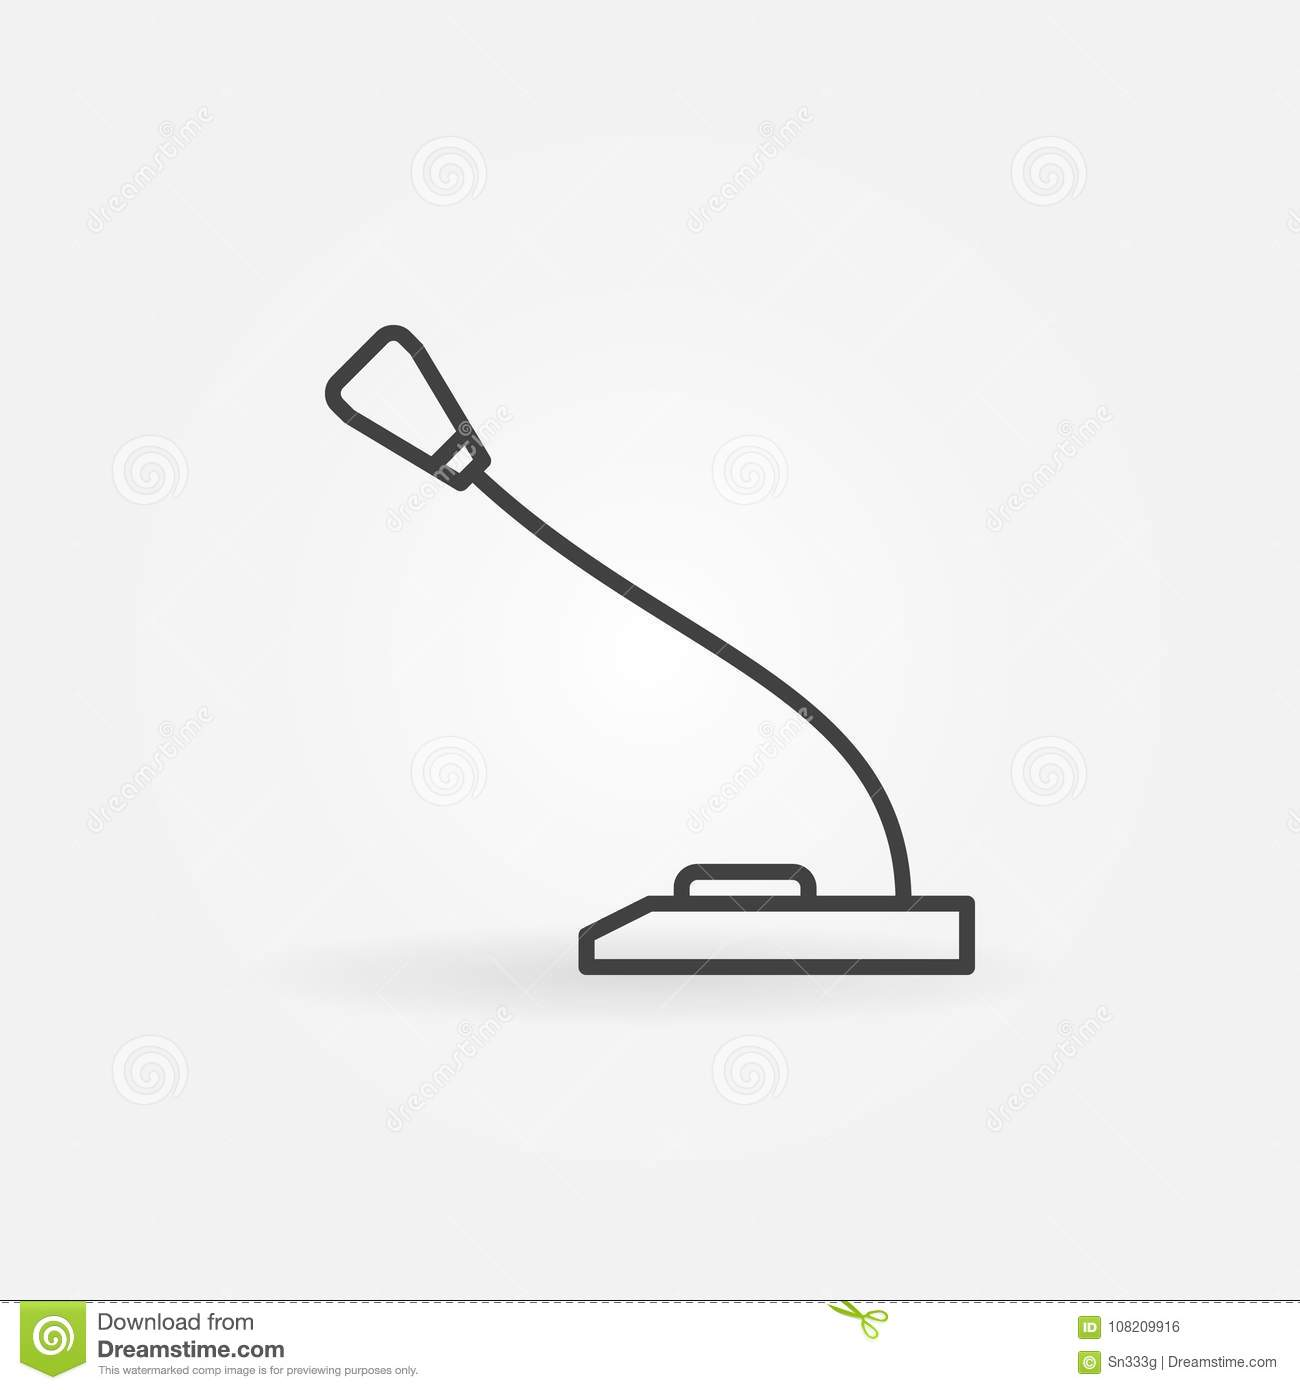 Microphone concept outline icon. Vector mic symbol